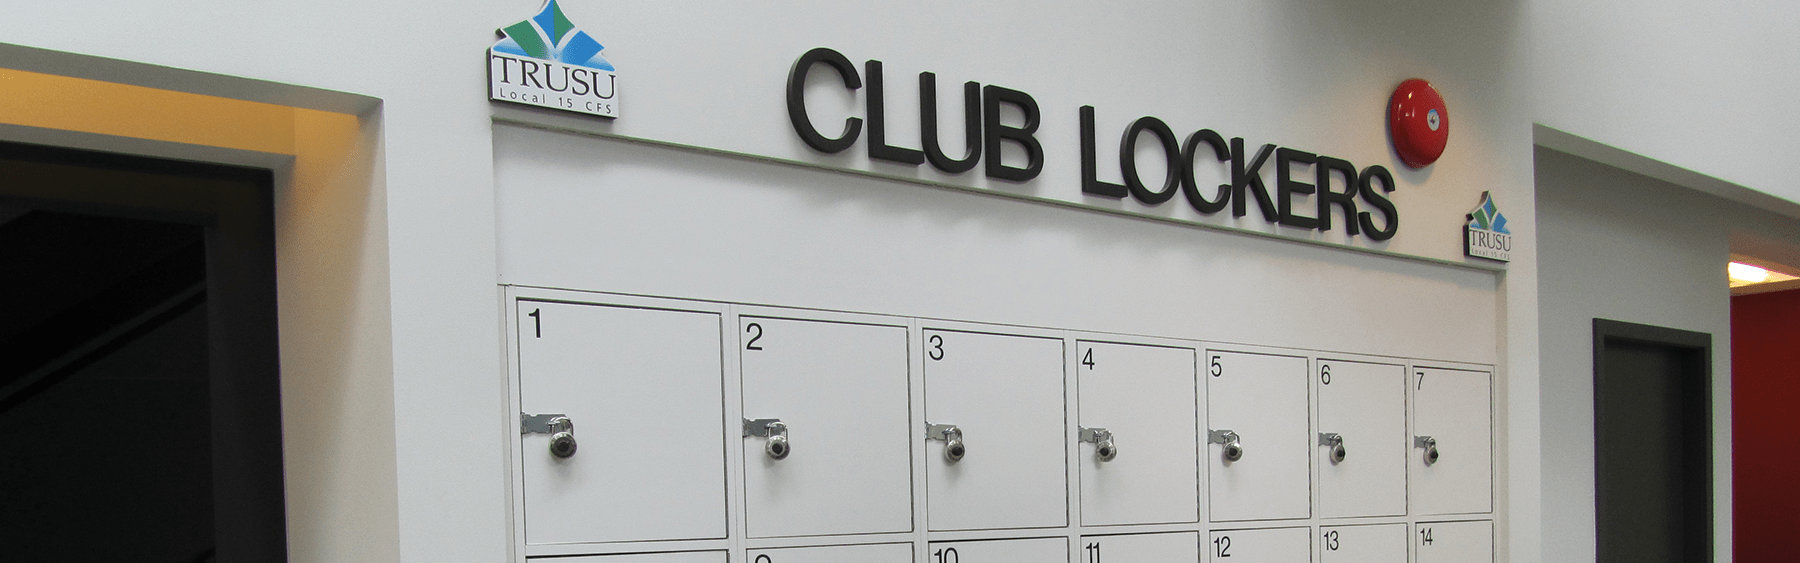 Club lockers Header